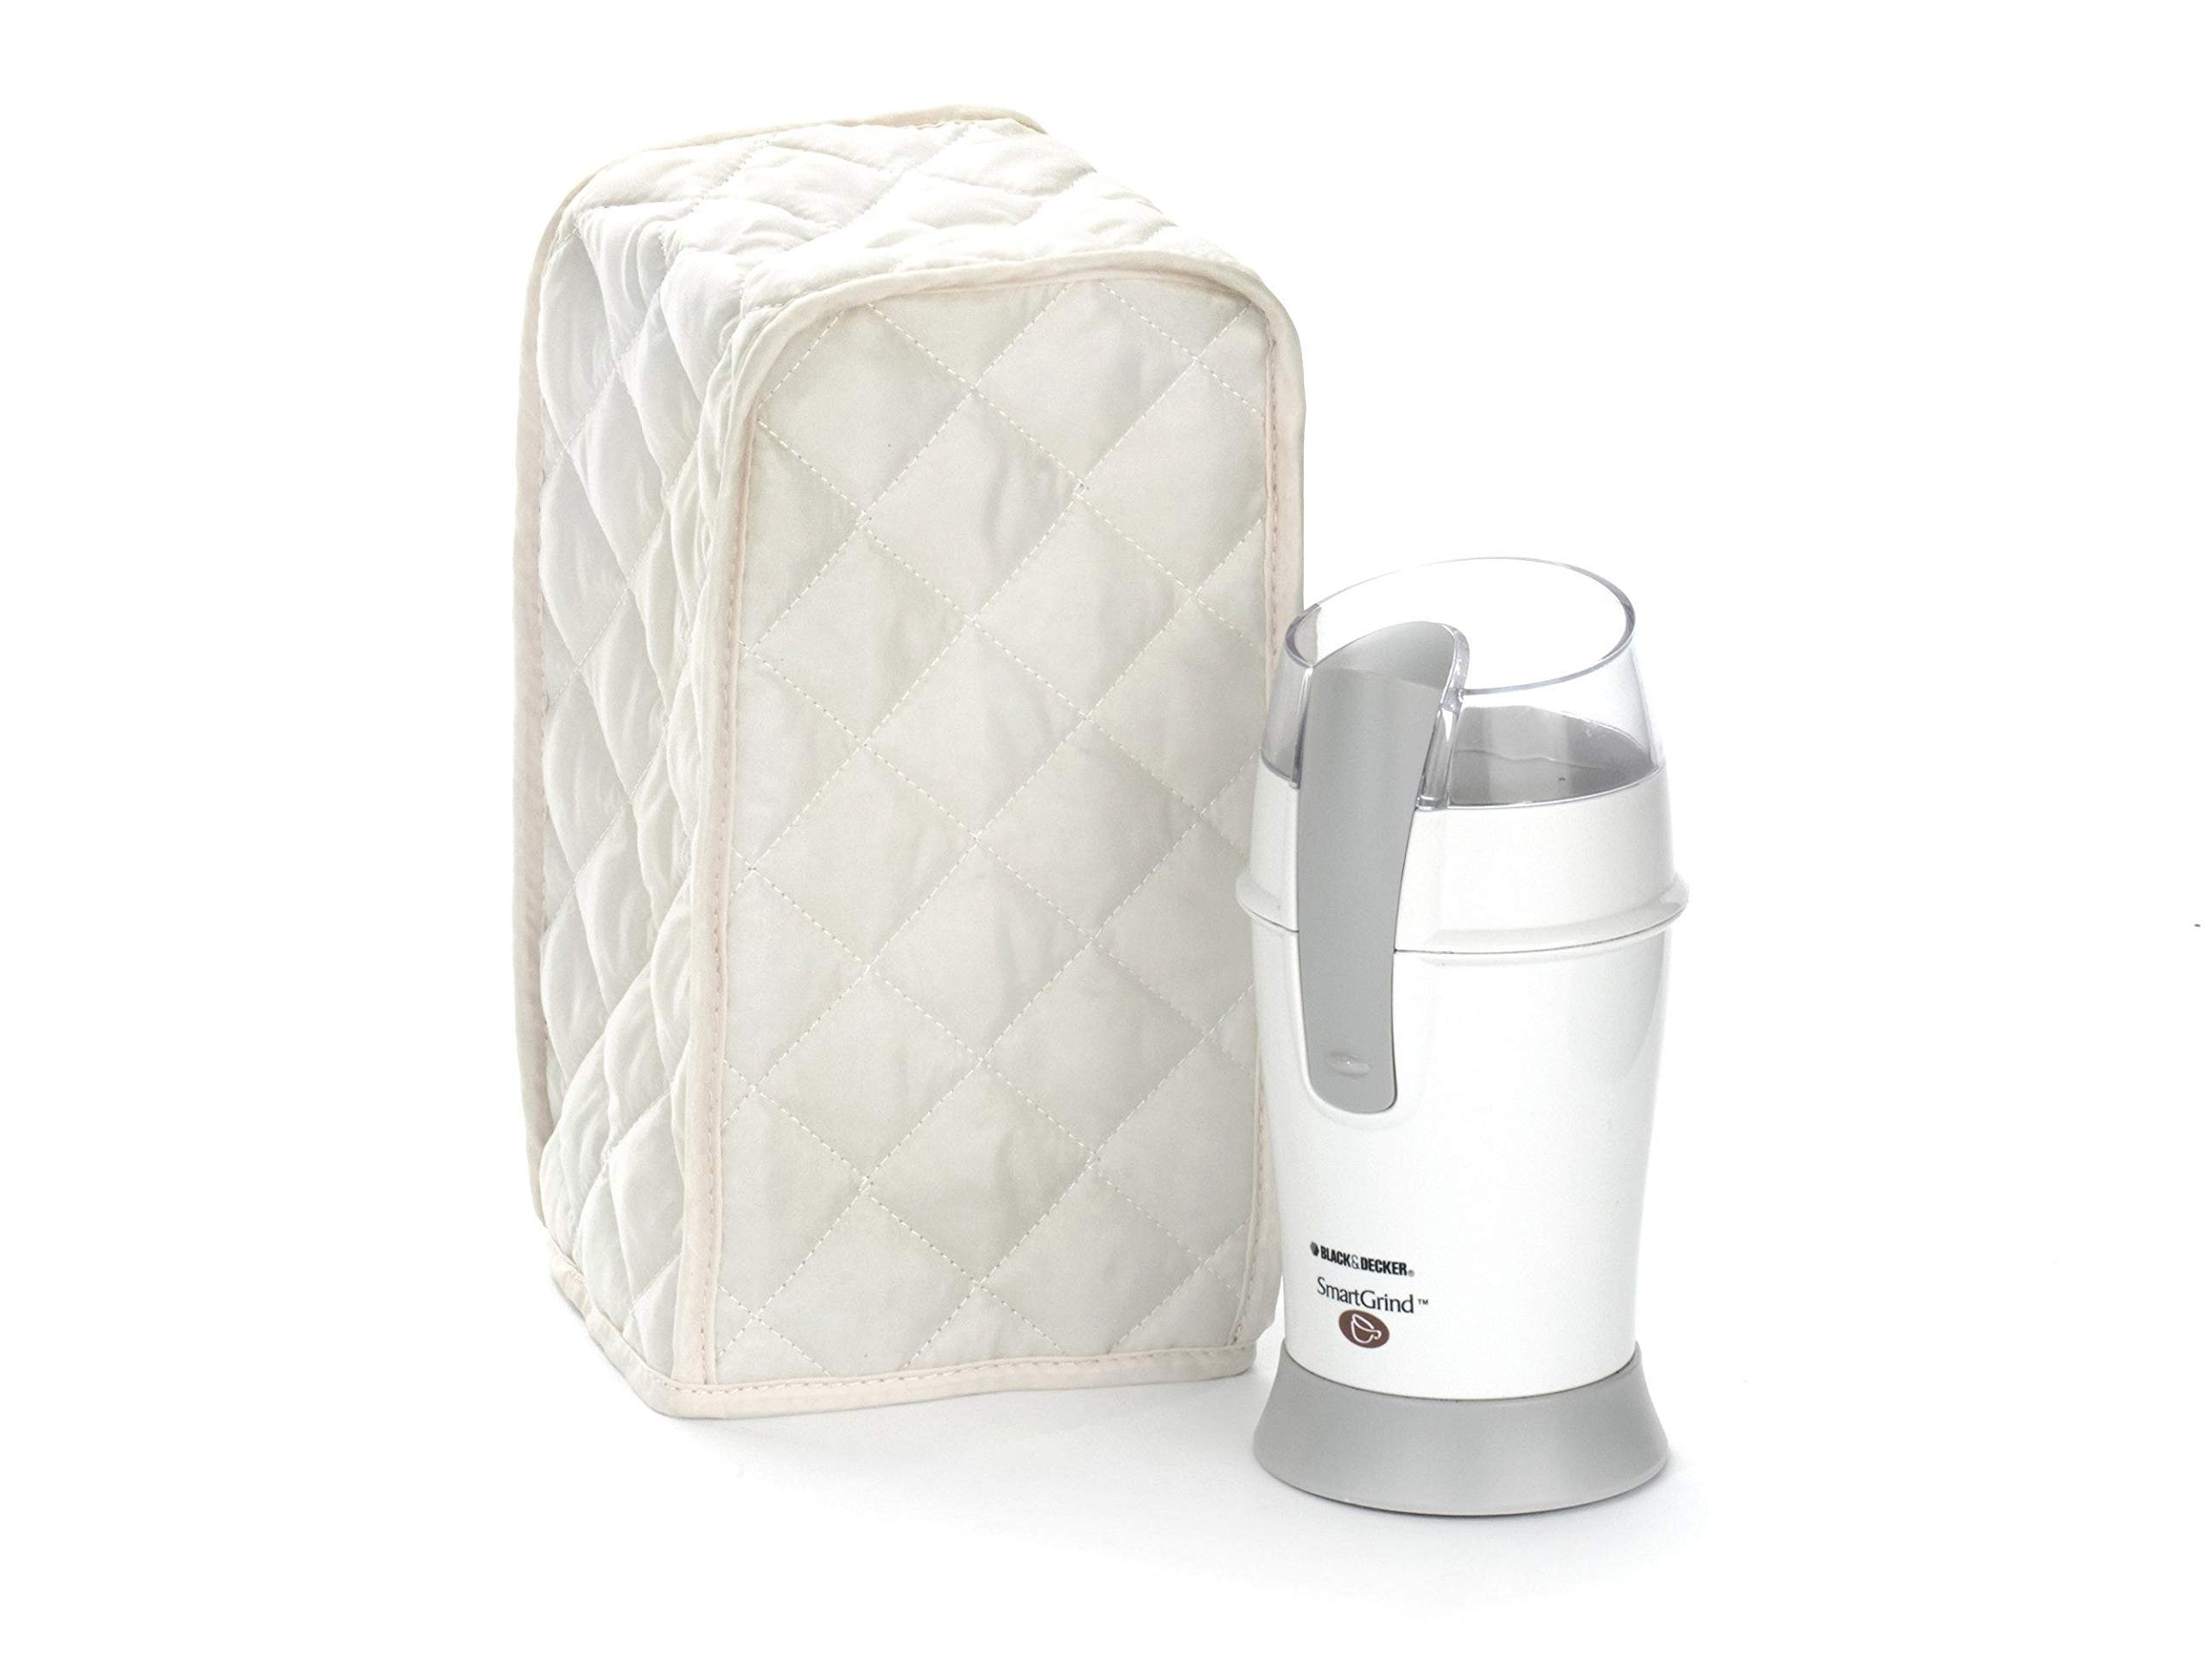 Covermates Keepsakes – Coffee Grinder – Dust Protection - Stain Resistant - Washable – Appliance Cover - Cream